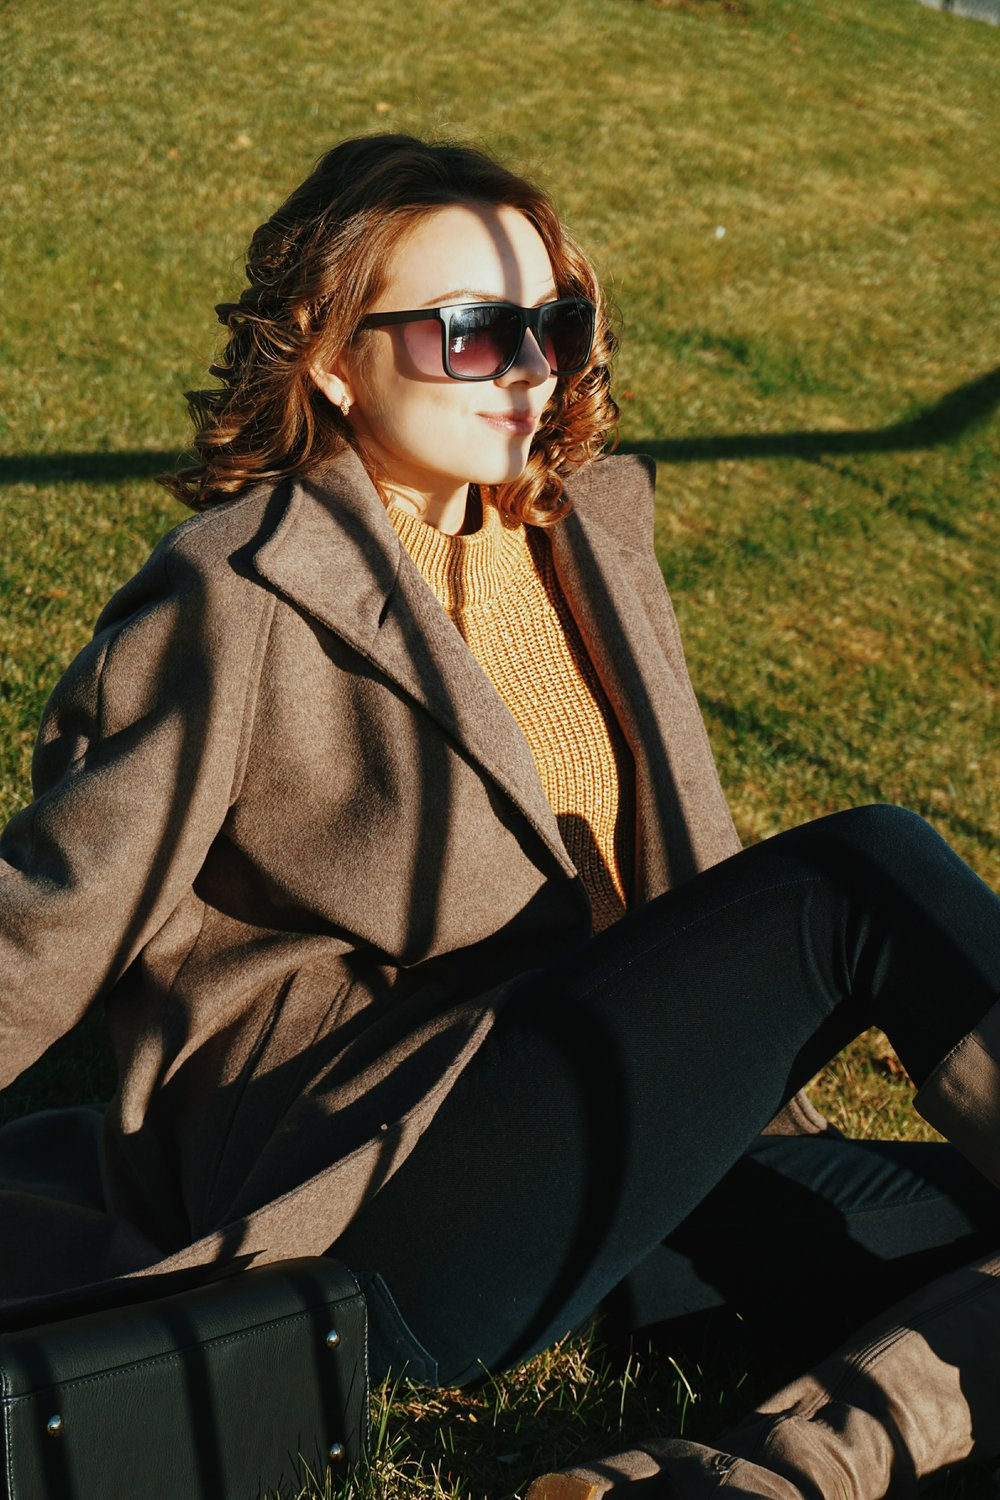 A blogger sitting on the grass, wearing dark jeans, brown sweater, boots, and a black bag.